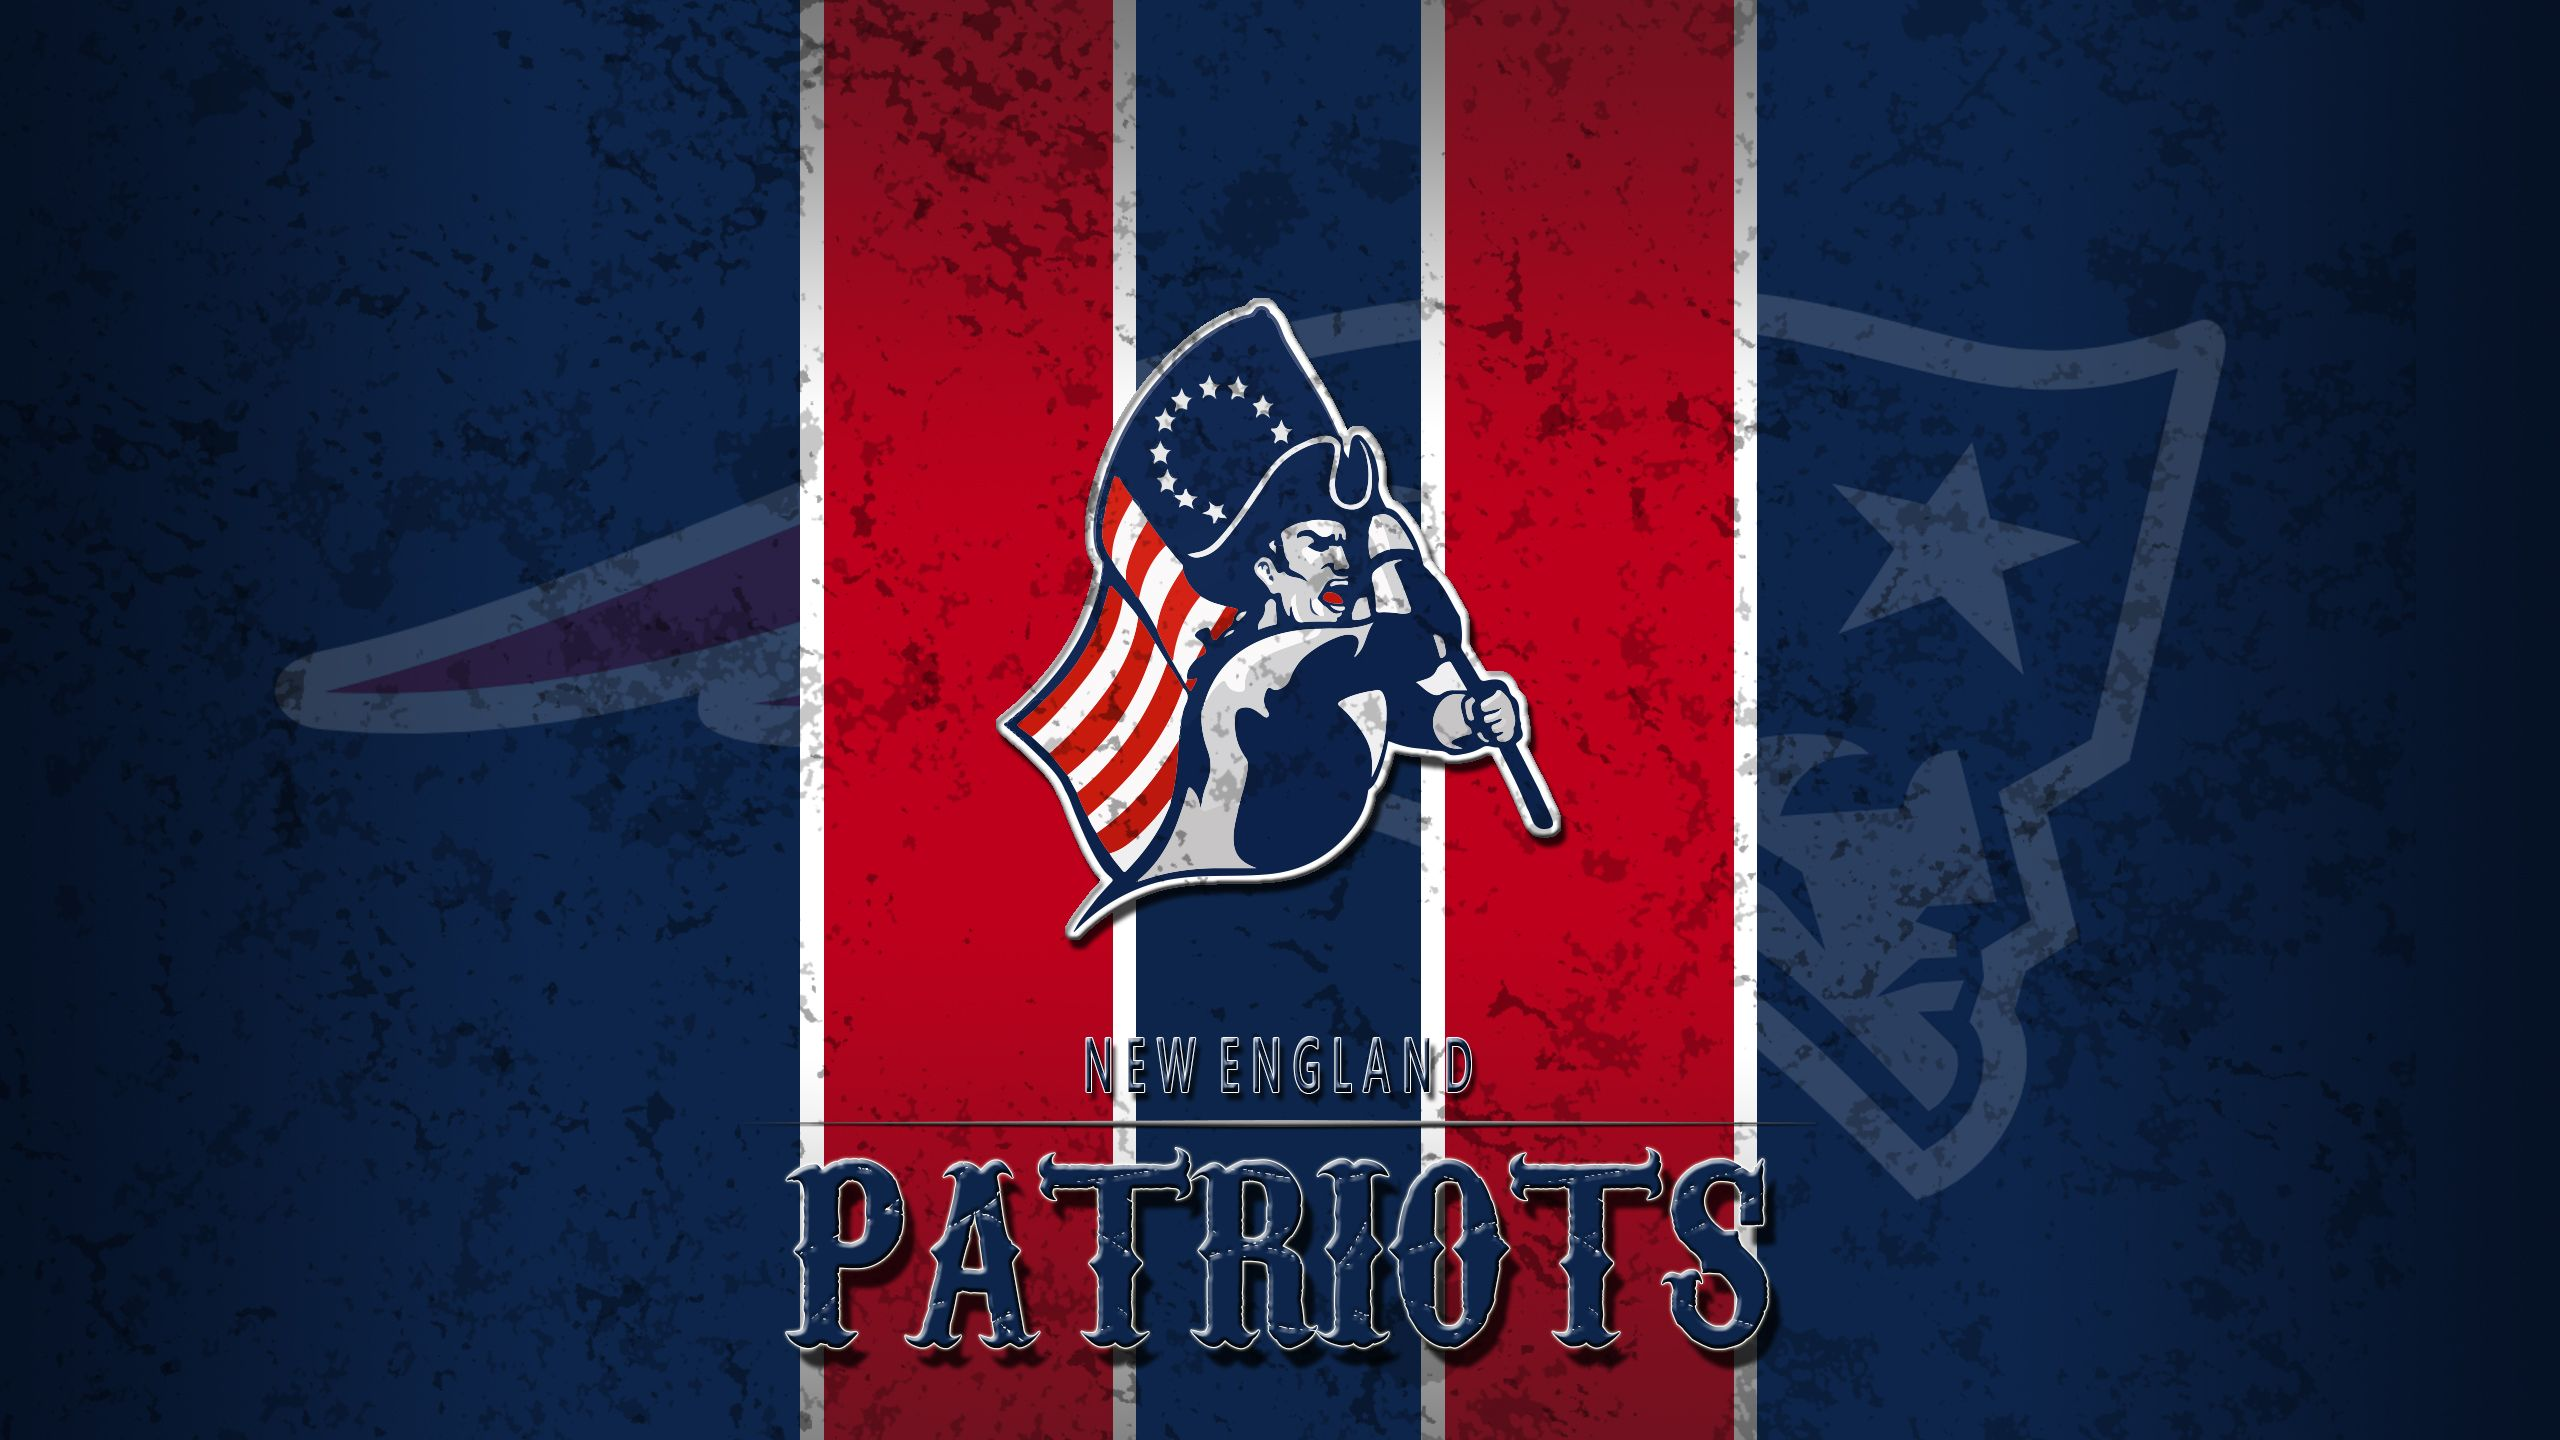 New Engand Patriots Yahoo Image Search Results New England Patriots Wallpaper Patriots Football Patriots